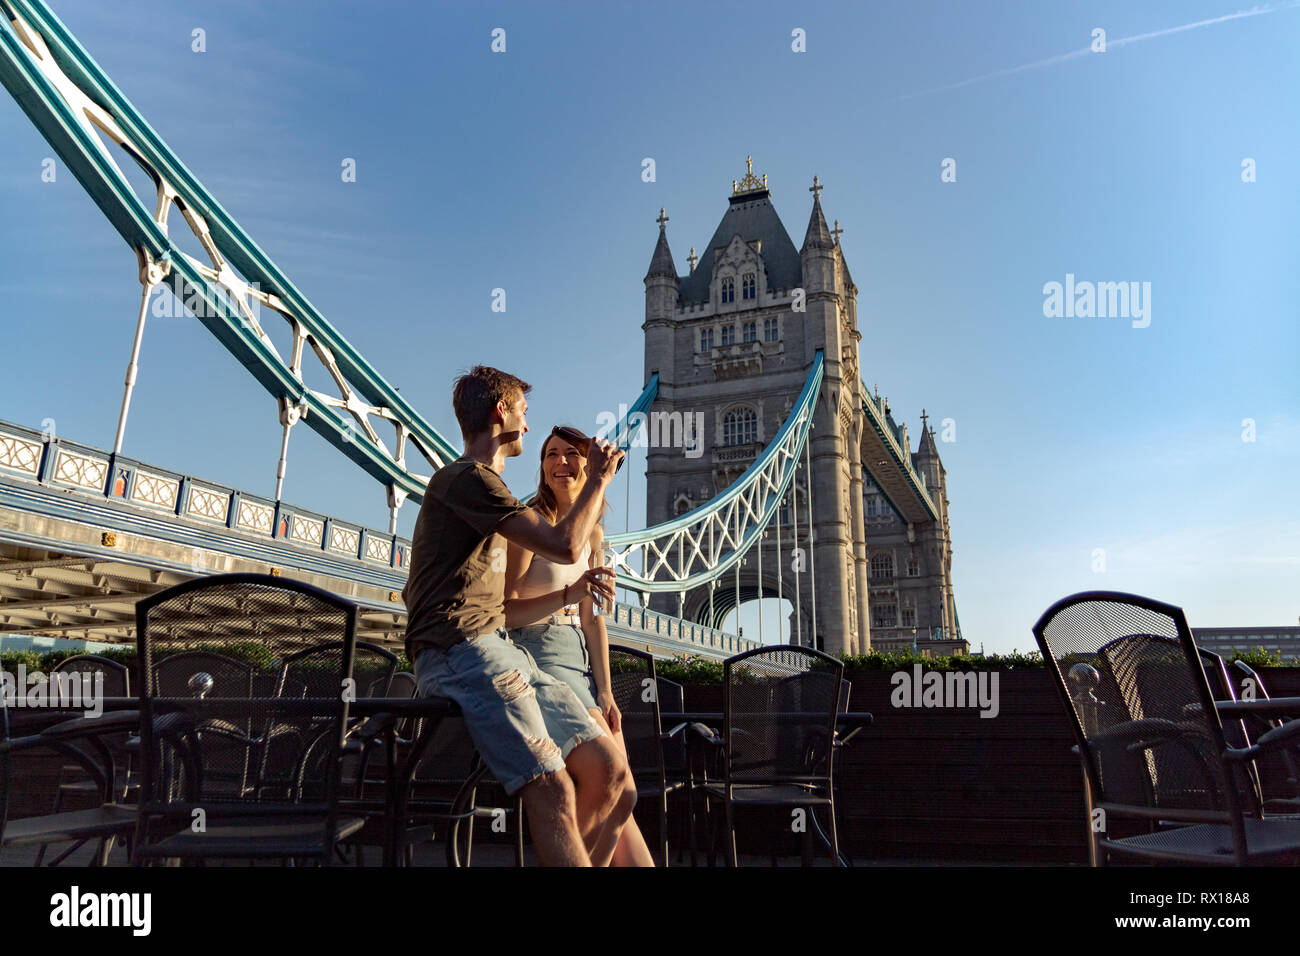 Couple enjoy sunset with beer and water sittin on a table. Tower bridge on the back - Stock Image